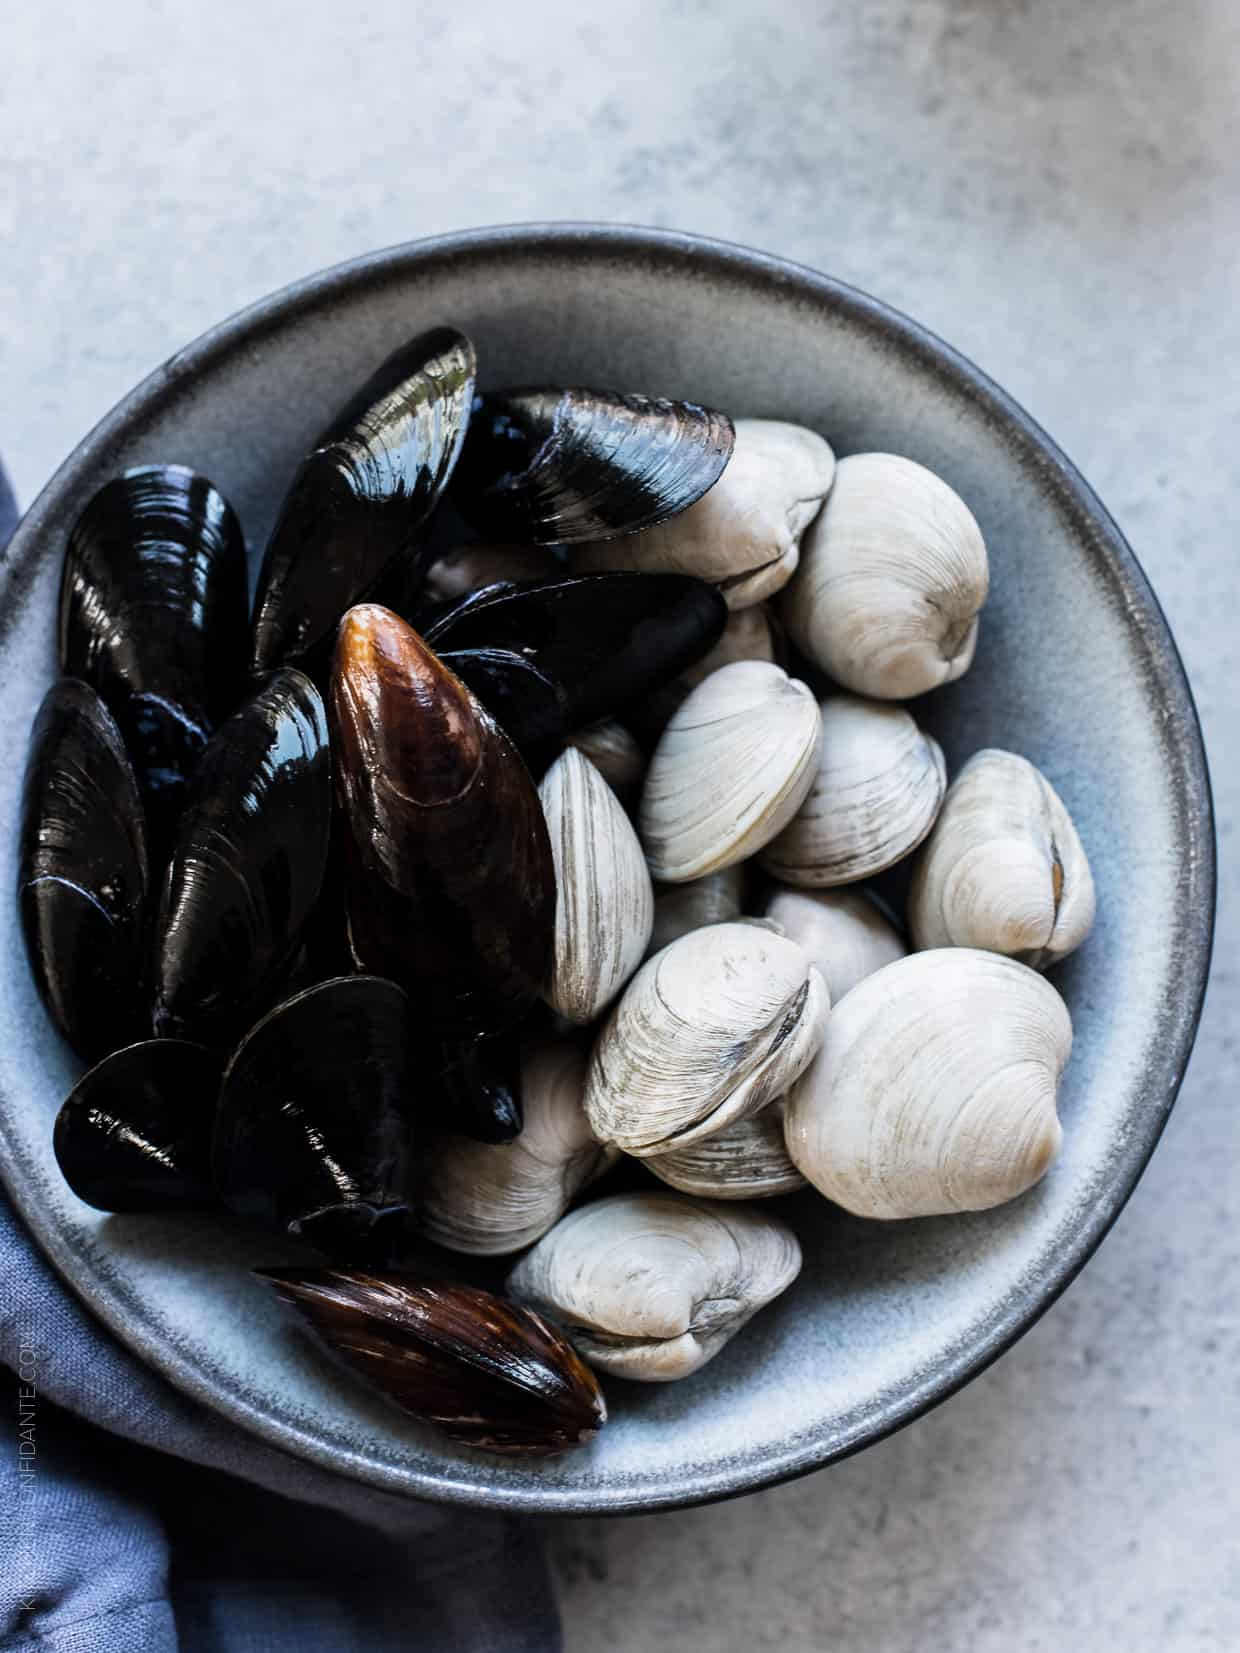 Fresh clams and mussels in a bowl on a rustic surface.